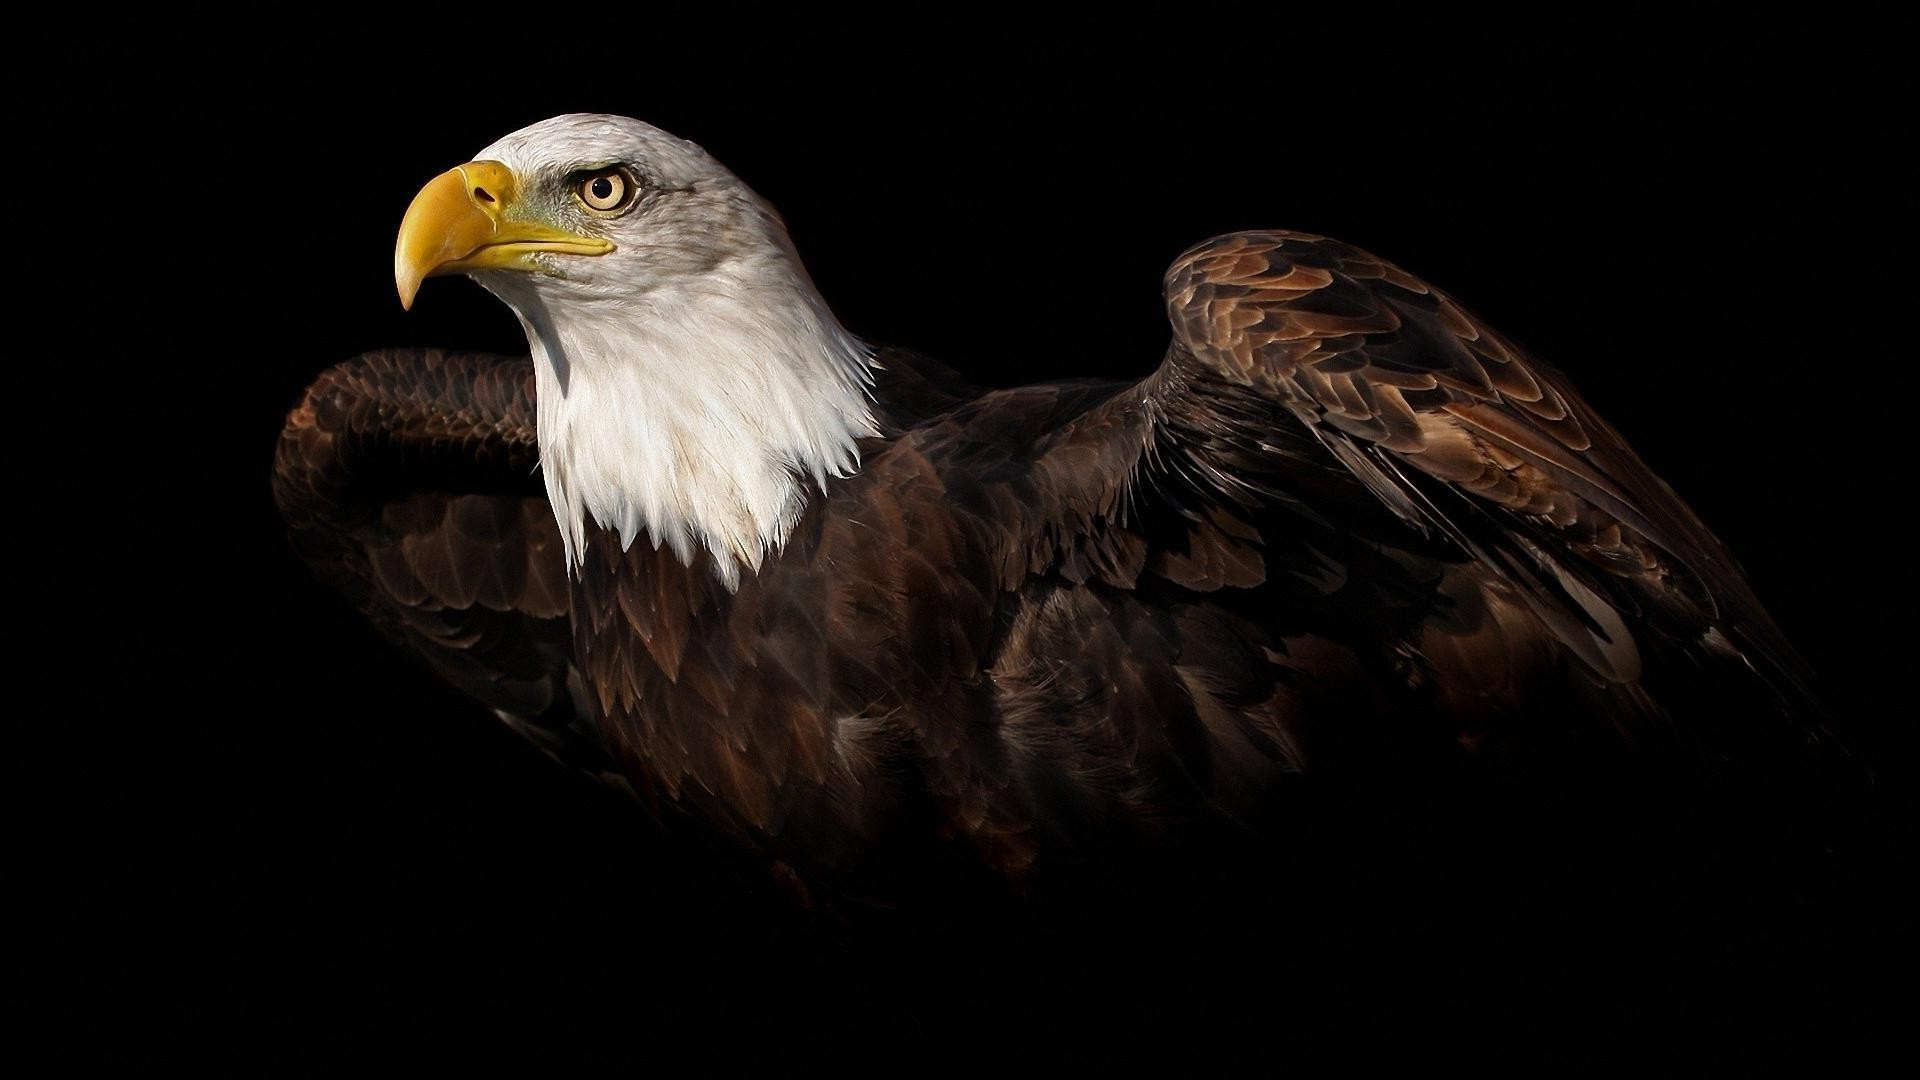 Bald Eagle Wallpaper HD Images One HD Wallpaper Pictures 1920x1080